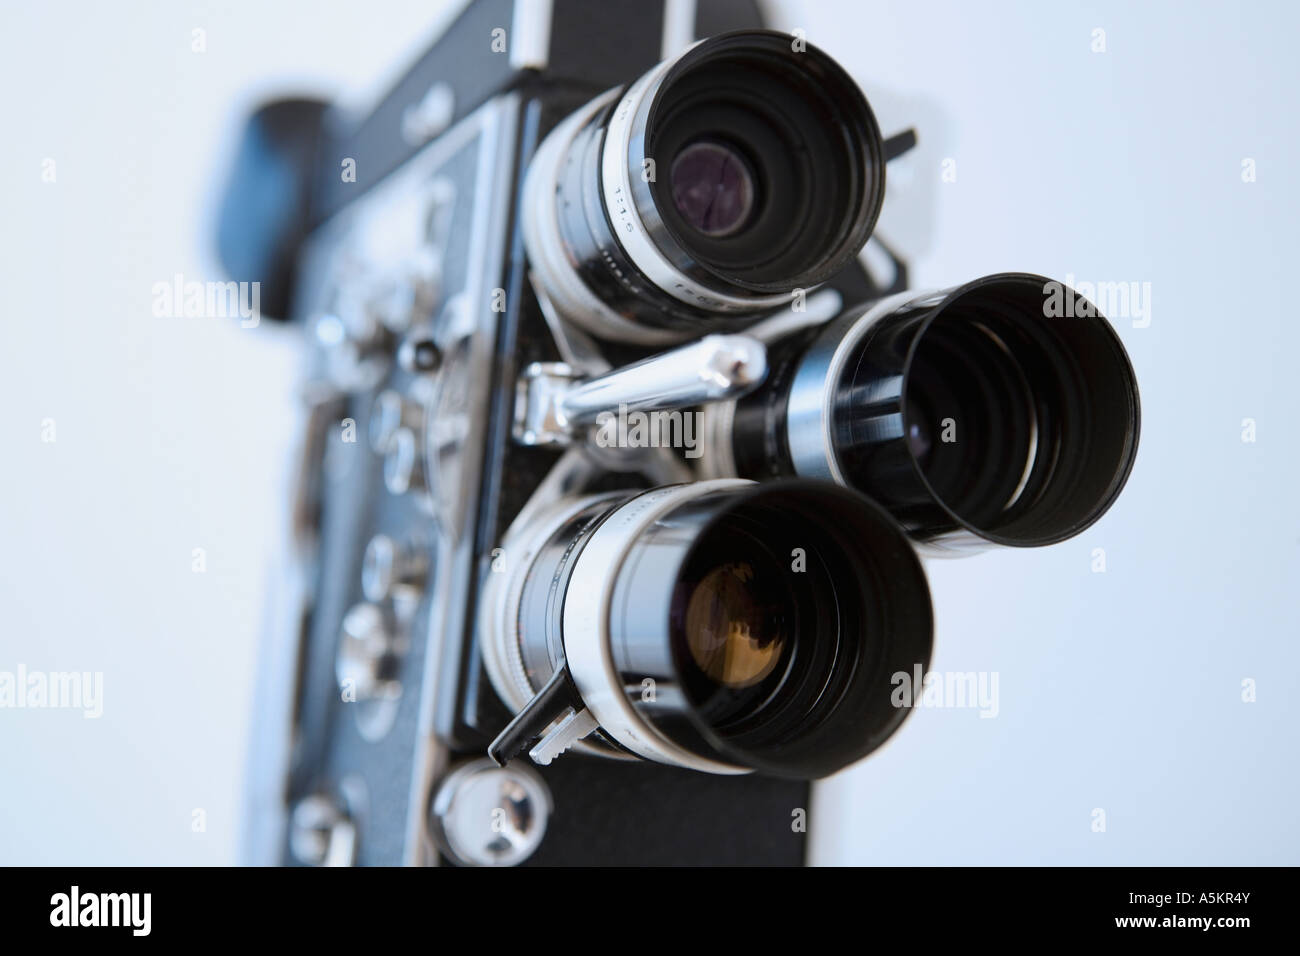 Close up of old fashioned film camera - Stock Image